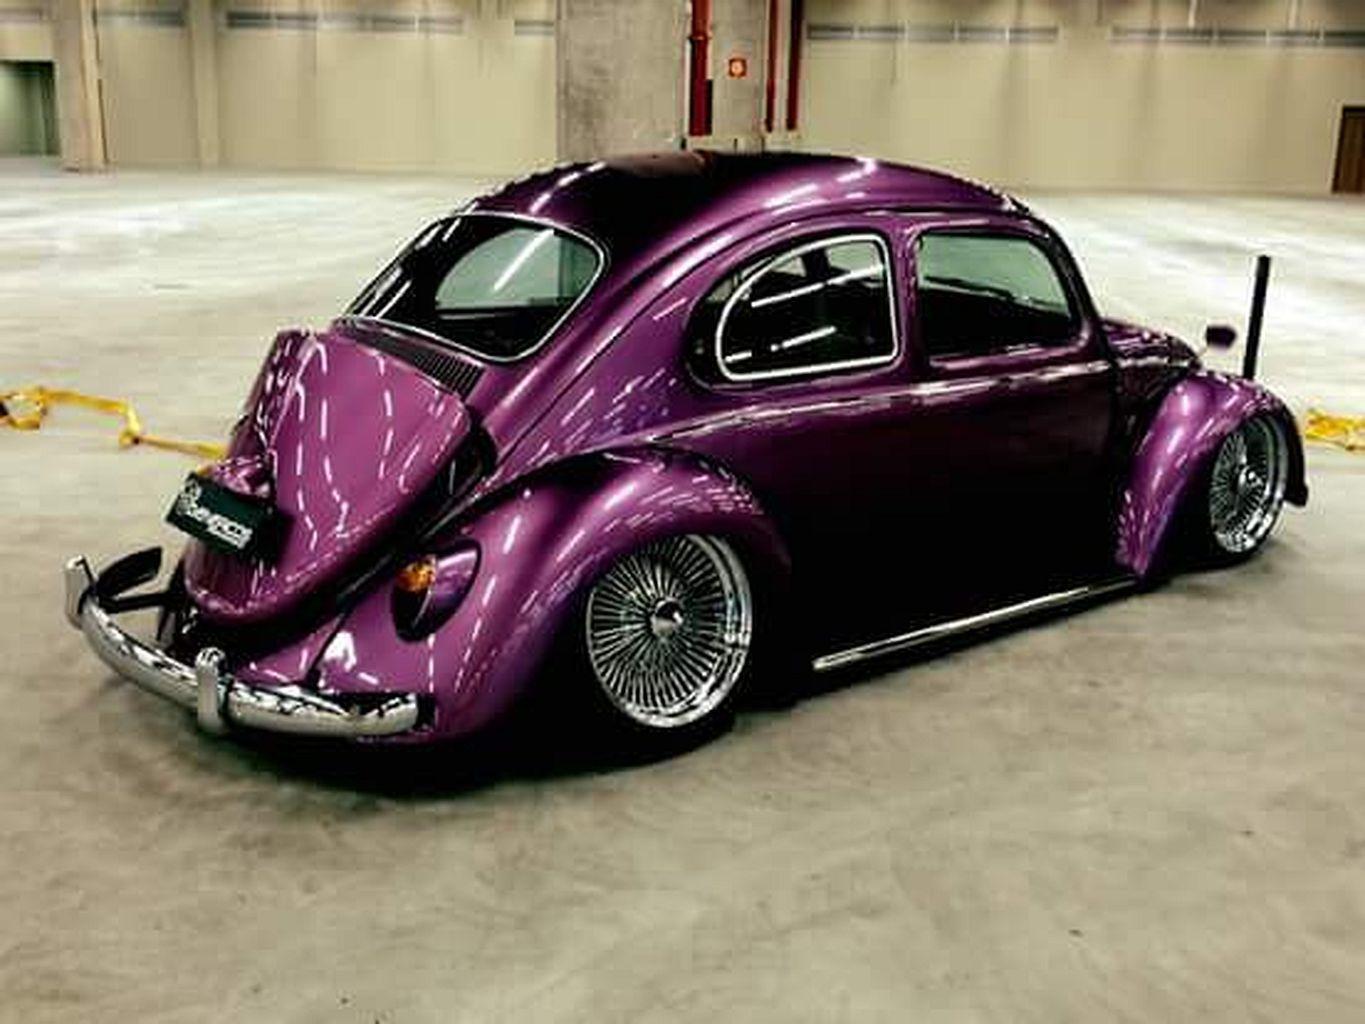 Vw Beetle Custom 62 PES nelga 2 Vw beetles, Vw cars